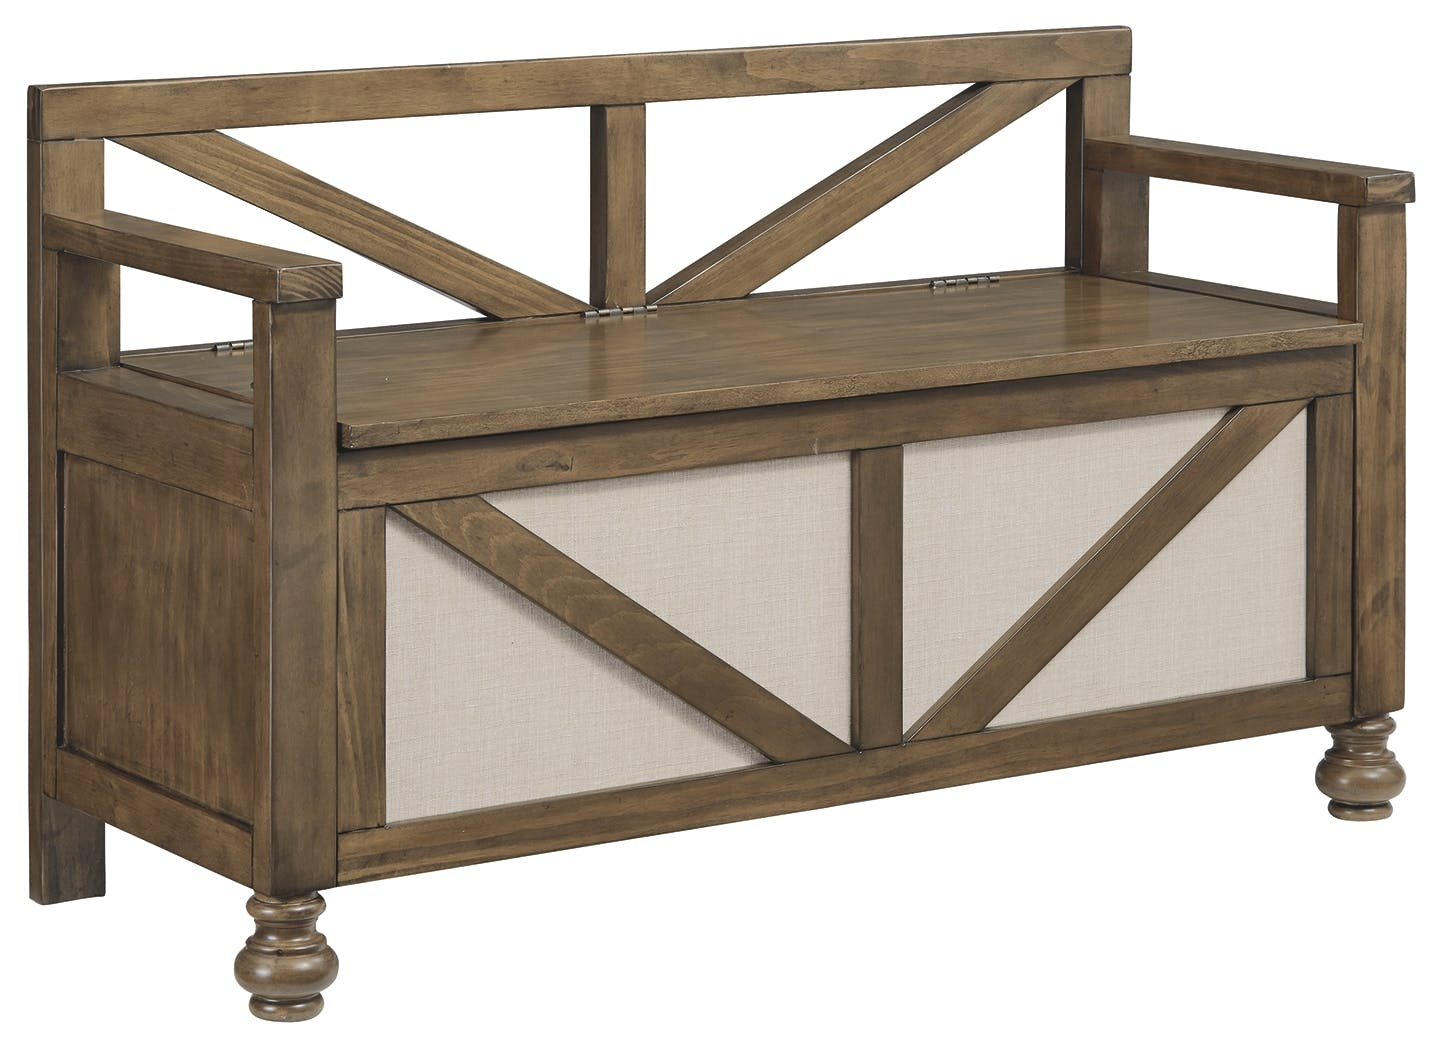 Signature Design By Ashley Living Room Brickwell Storage Bench A3000219 Markson S Furniture